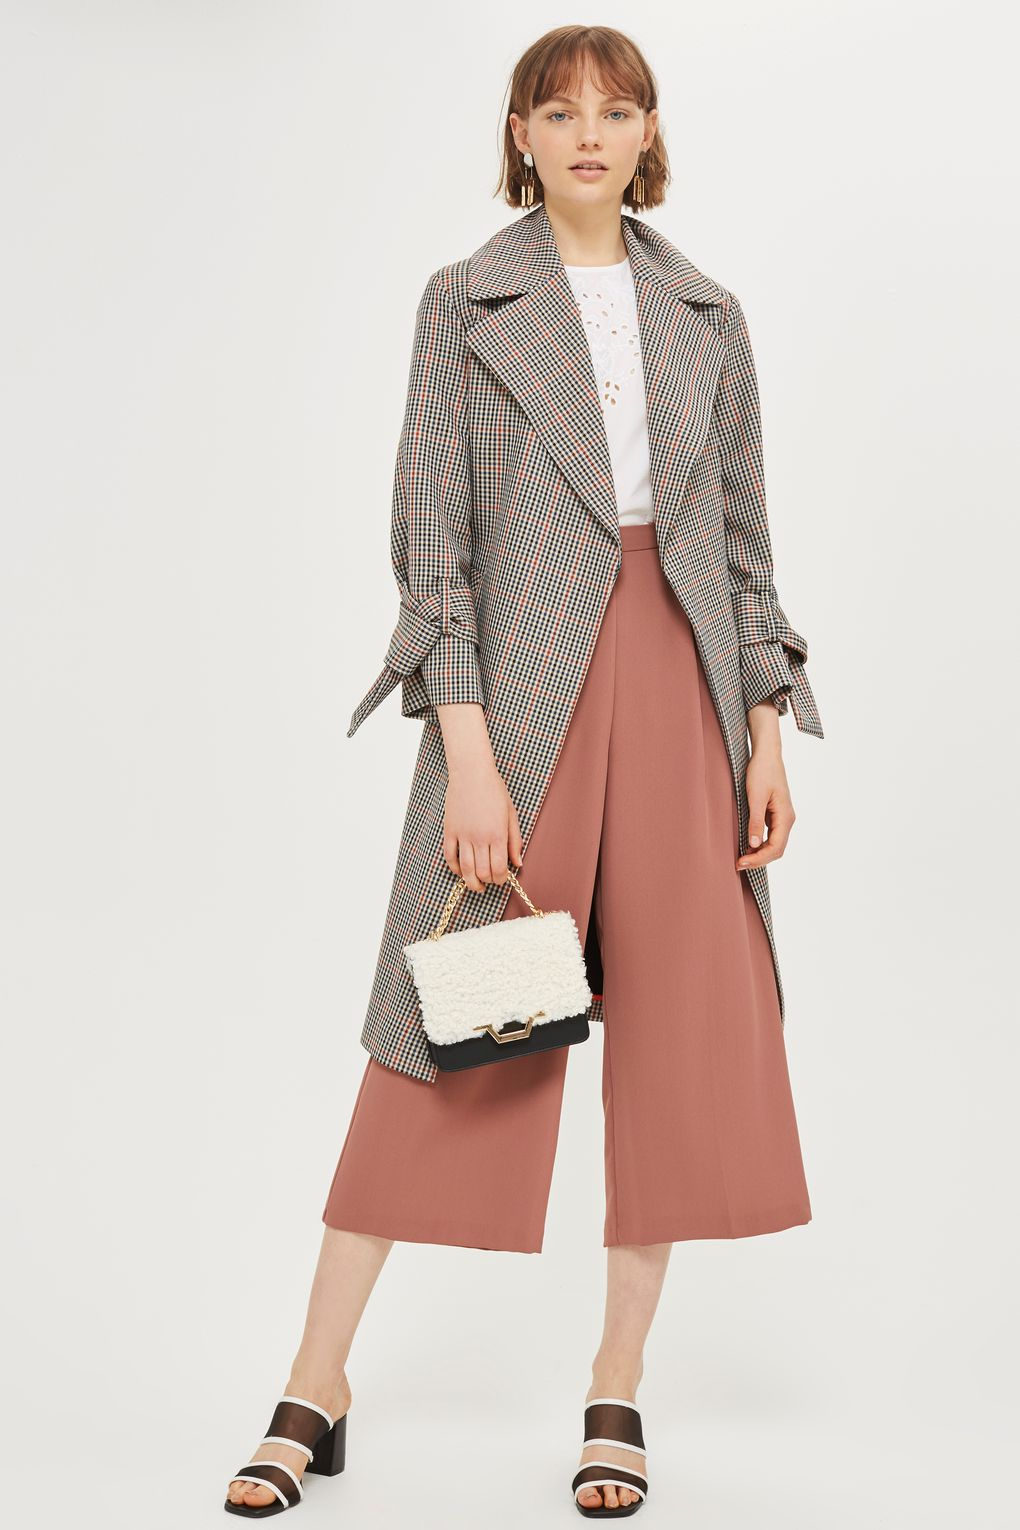 Interview Outfits for Women - Job Interview Outfits